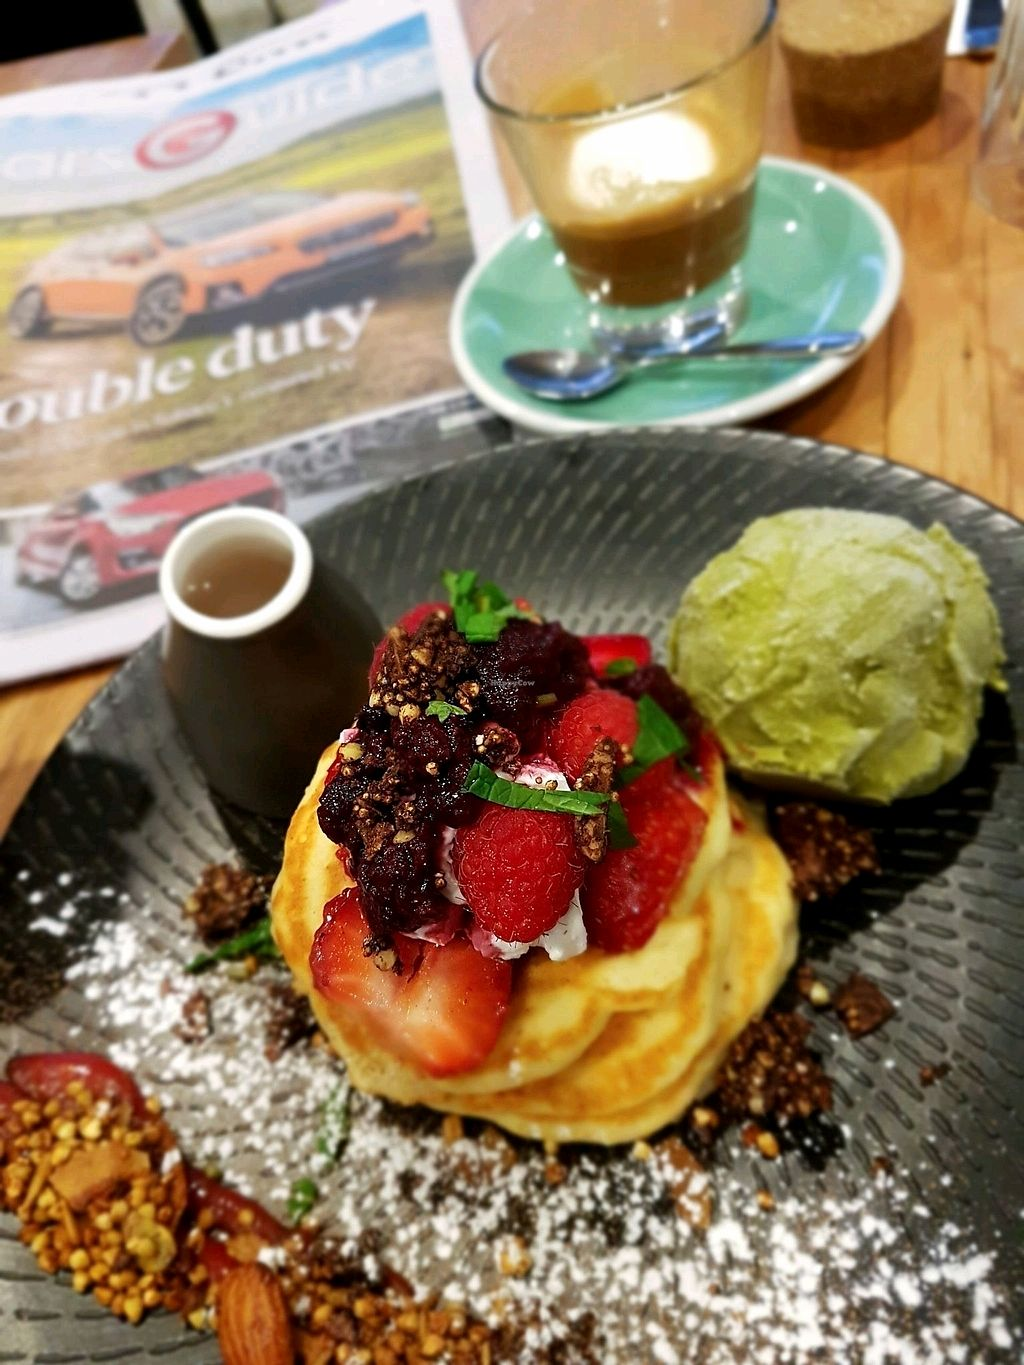 """Photo of 6 Nutrition  by <a href=""""/members/profile/vicinaus"""">vicinaus</a> <br/>Protein Pancakes.. A clear favourite ? <br/> November 28, 2017  - <a href='/contact/abuse/image/76564/329998'>Report</a>"""